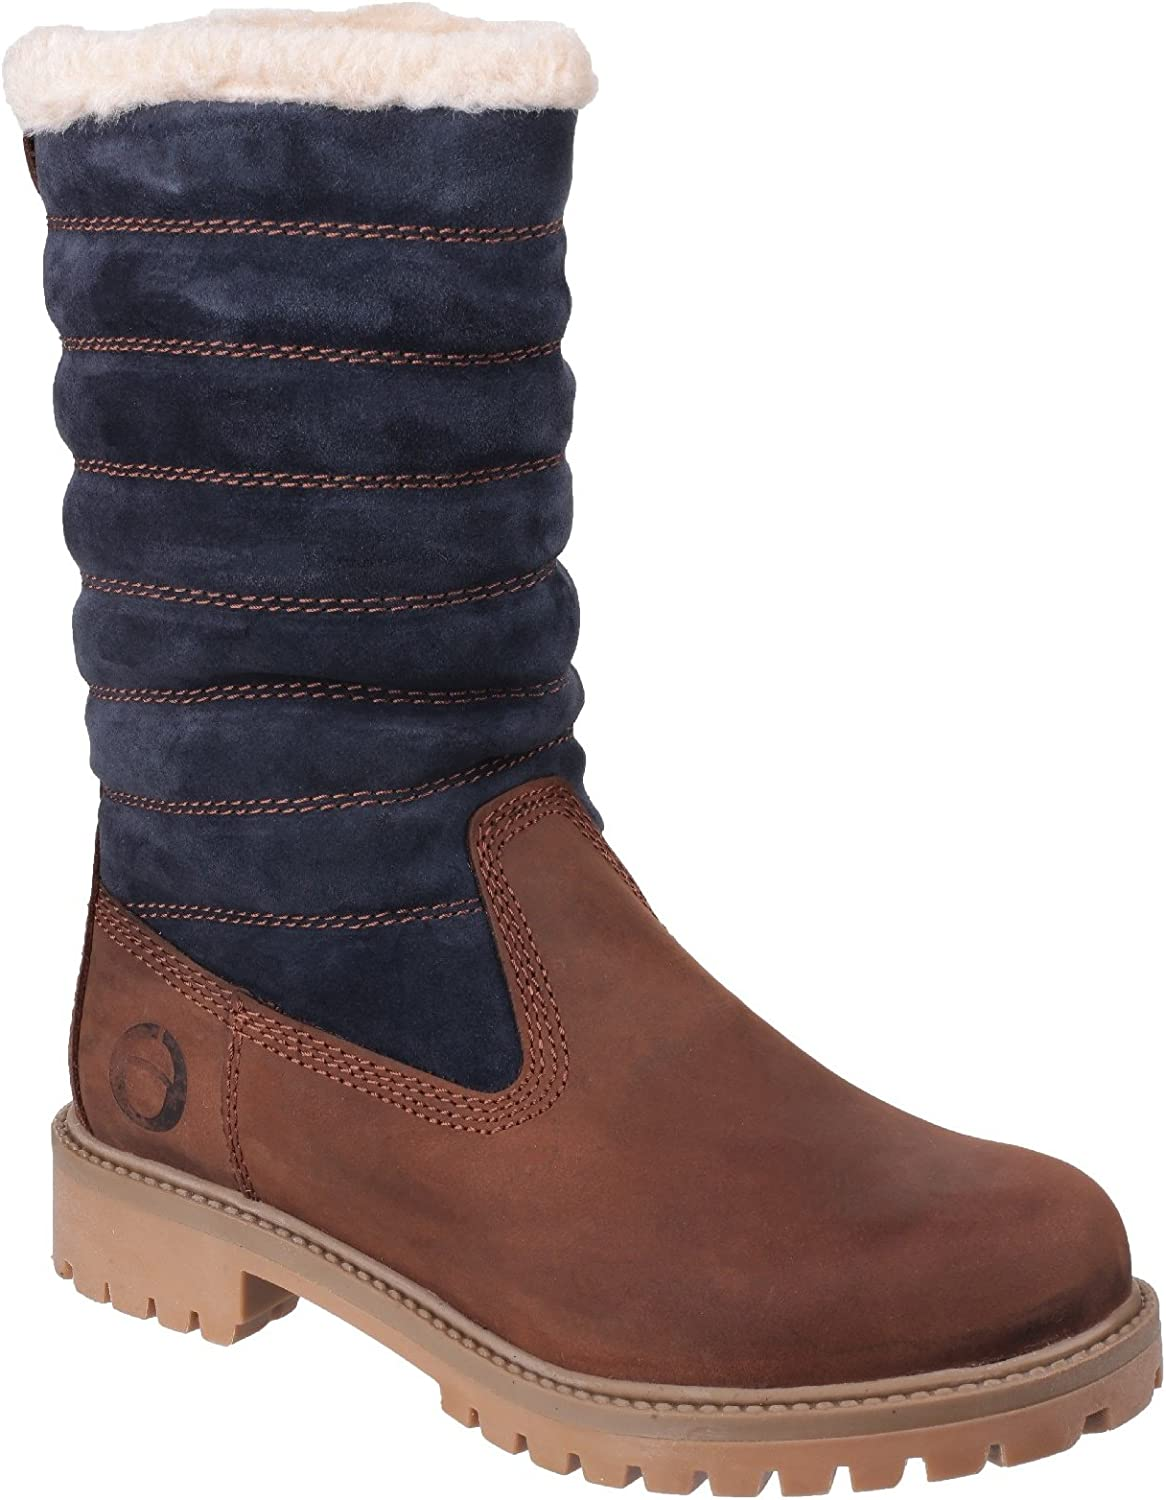 Cotswold Womens Ladies Ripple Zip Up Boots